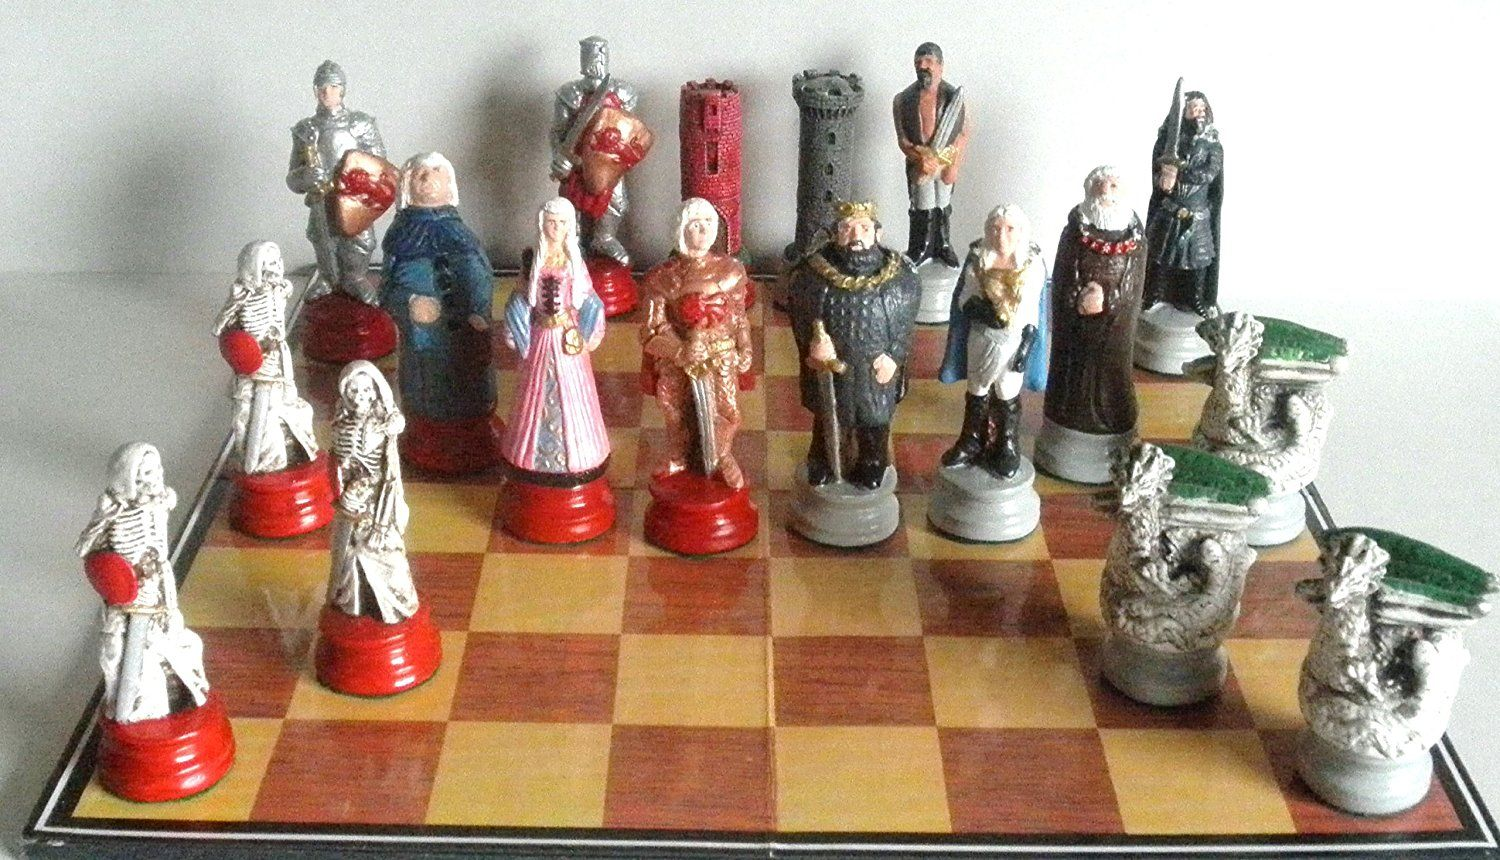 Game Of Thrones Chess Set At Amazon Chess Sets Pinterest Chess Sets